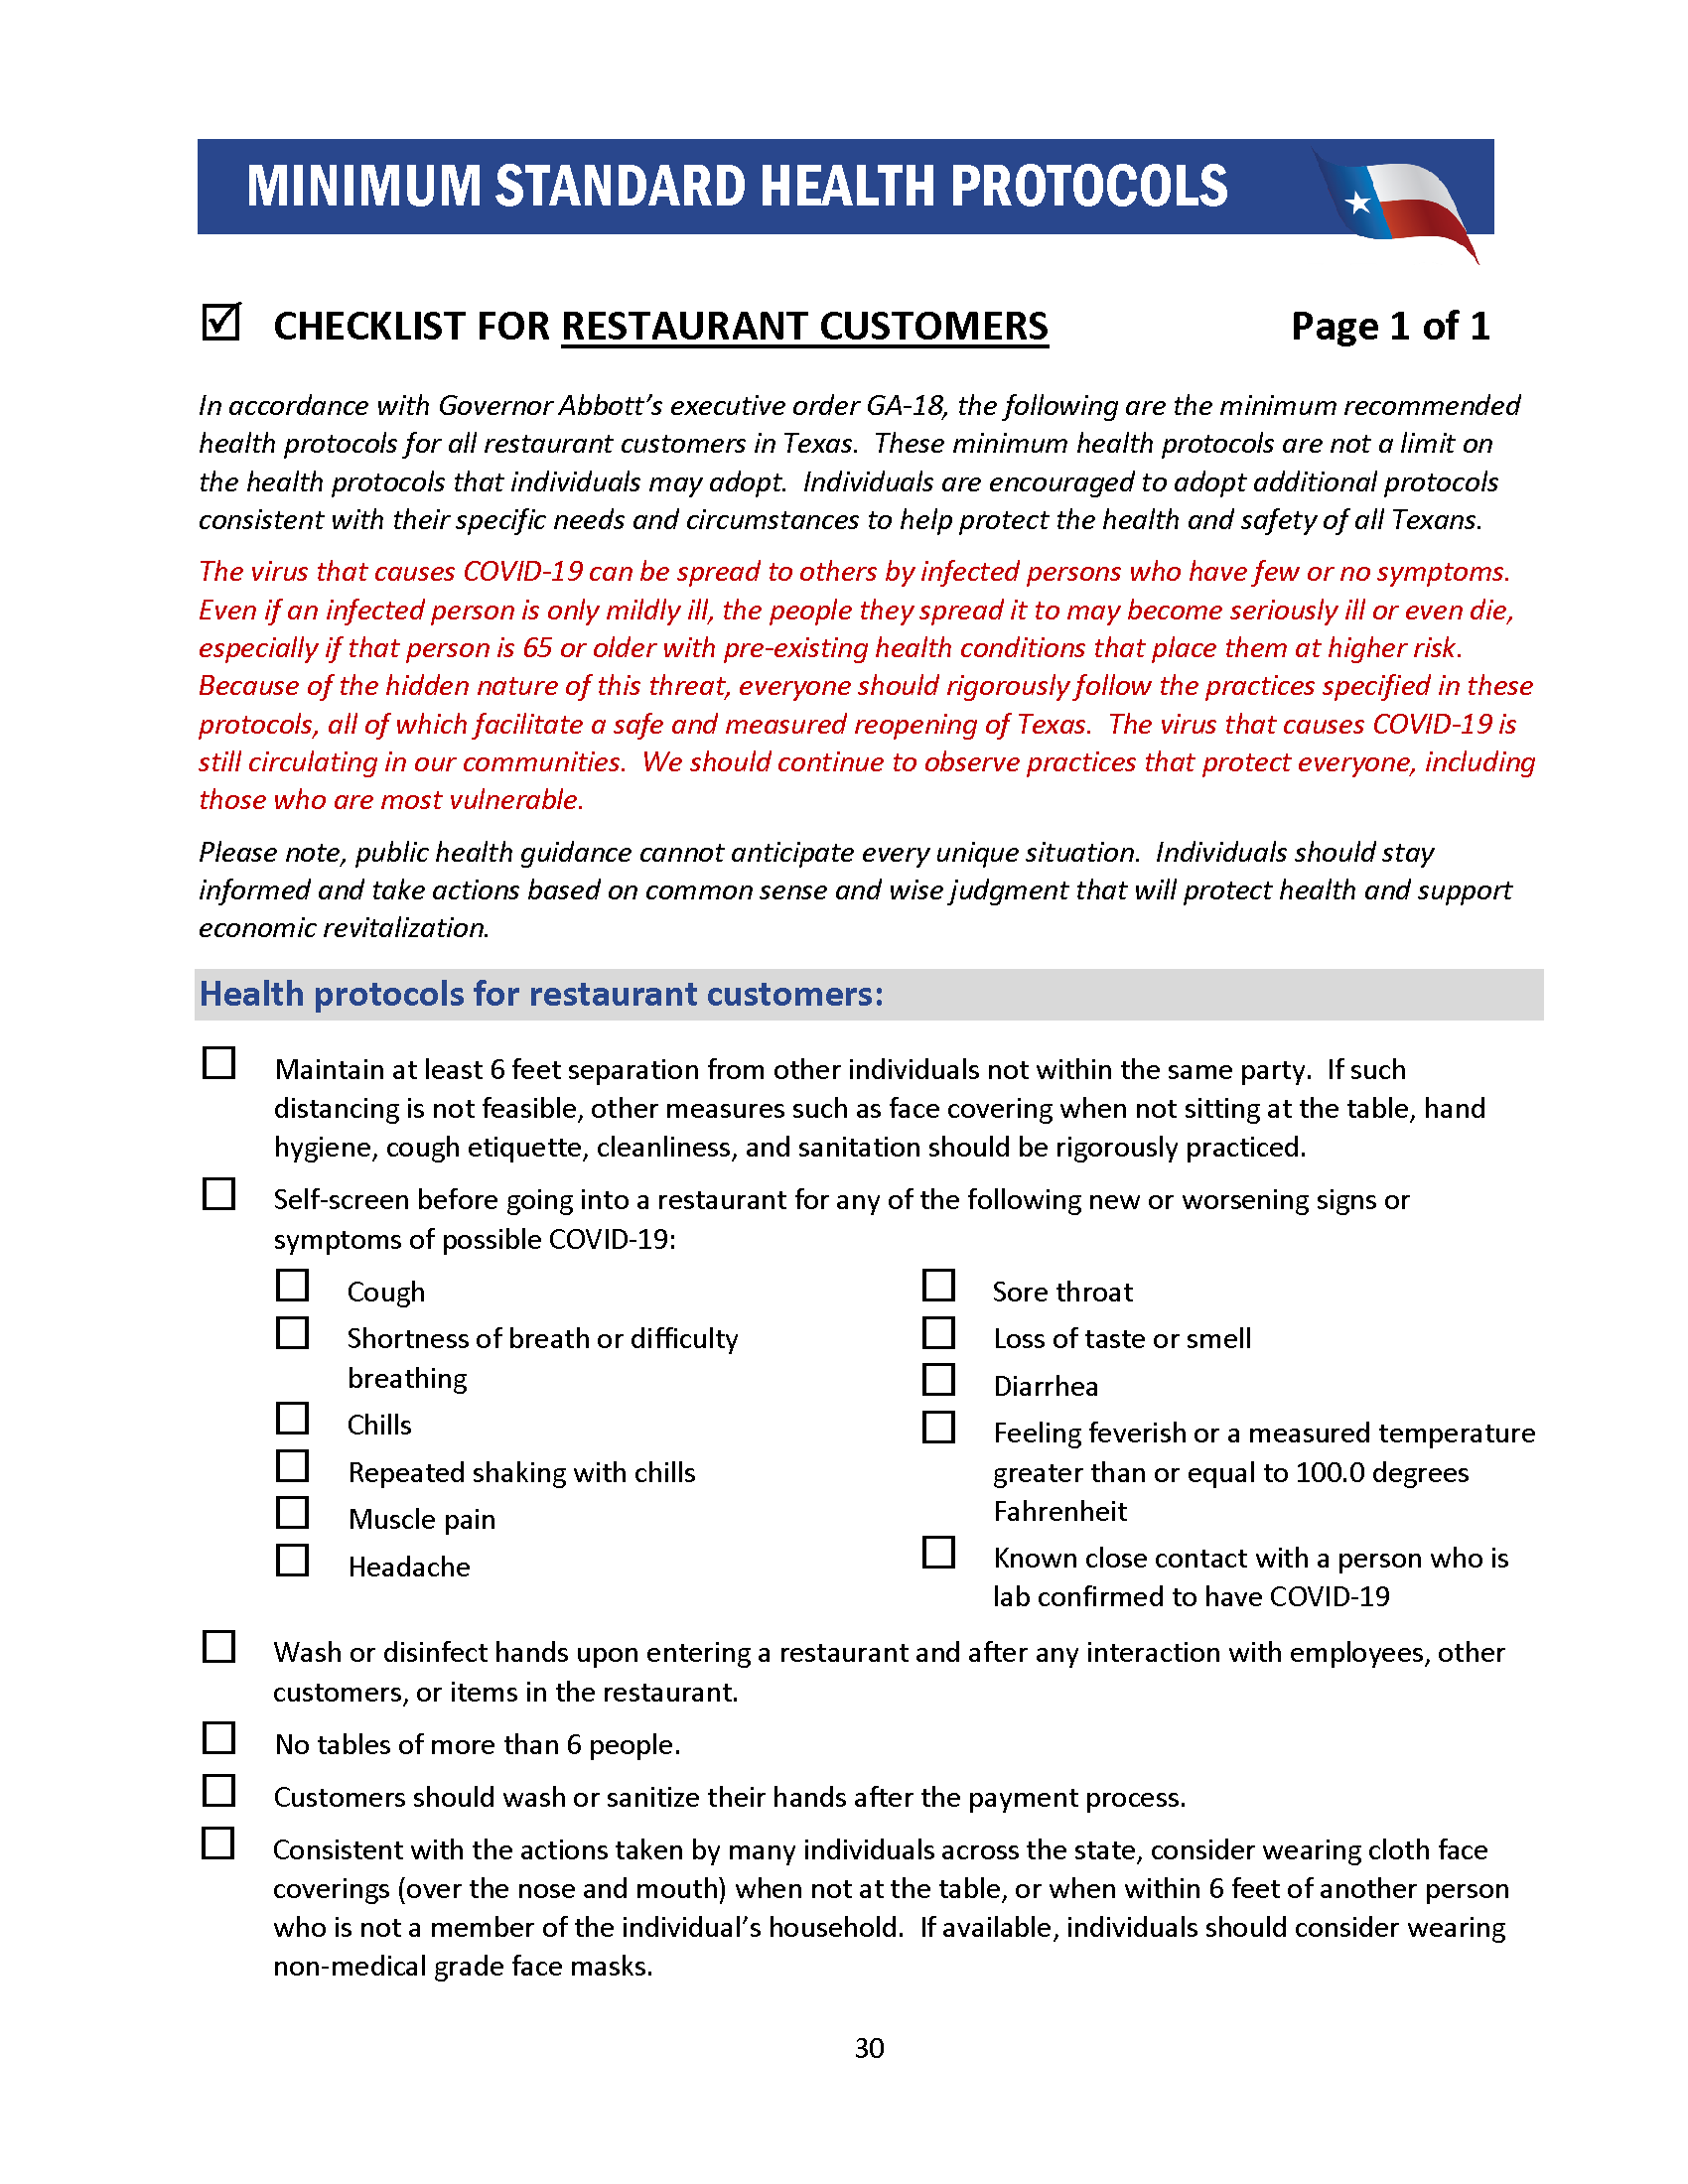 Checklist for Restaurant Customers